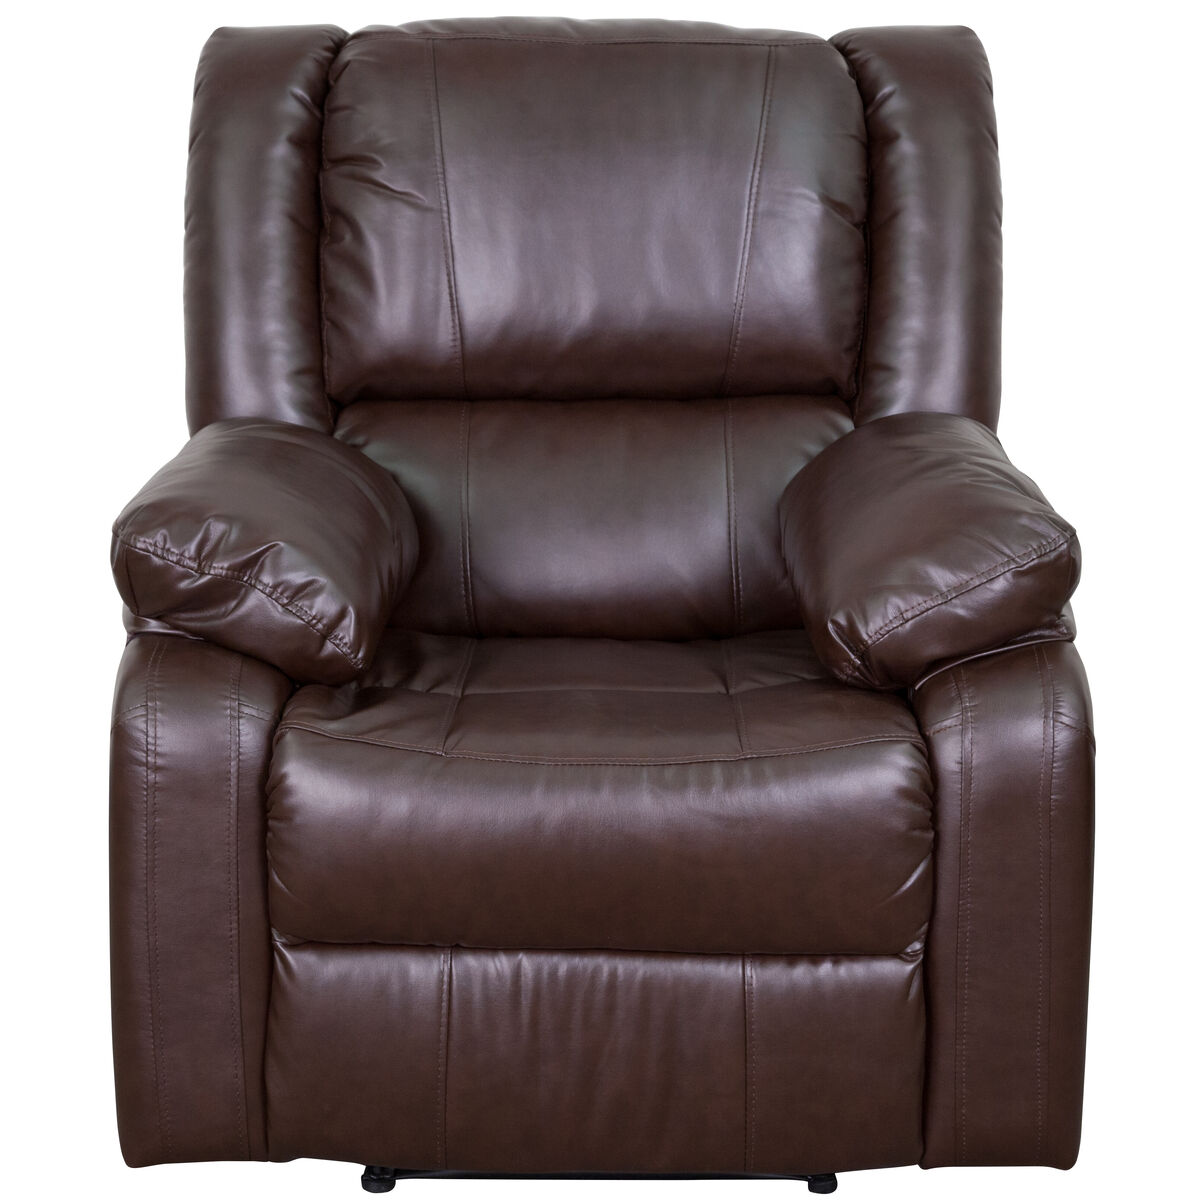 Our Harmony Series Brown Leather Recliner Is On Now